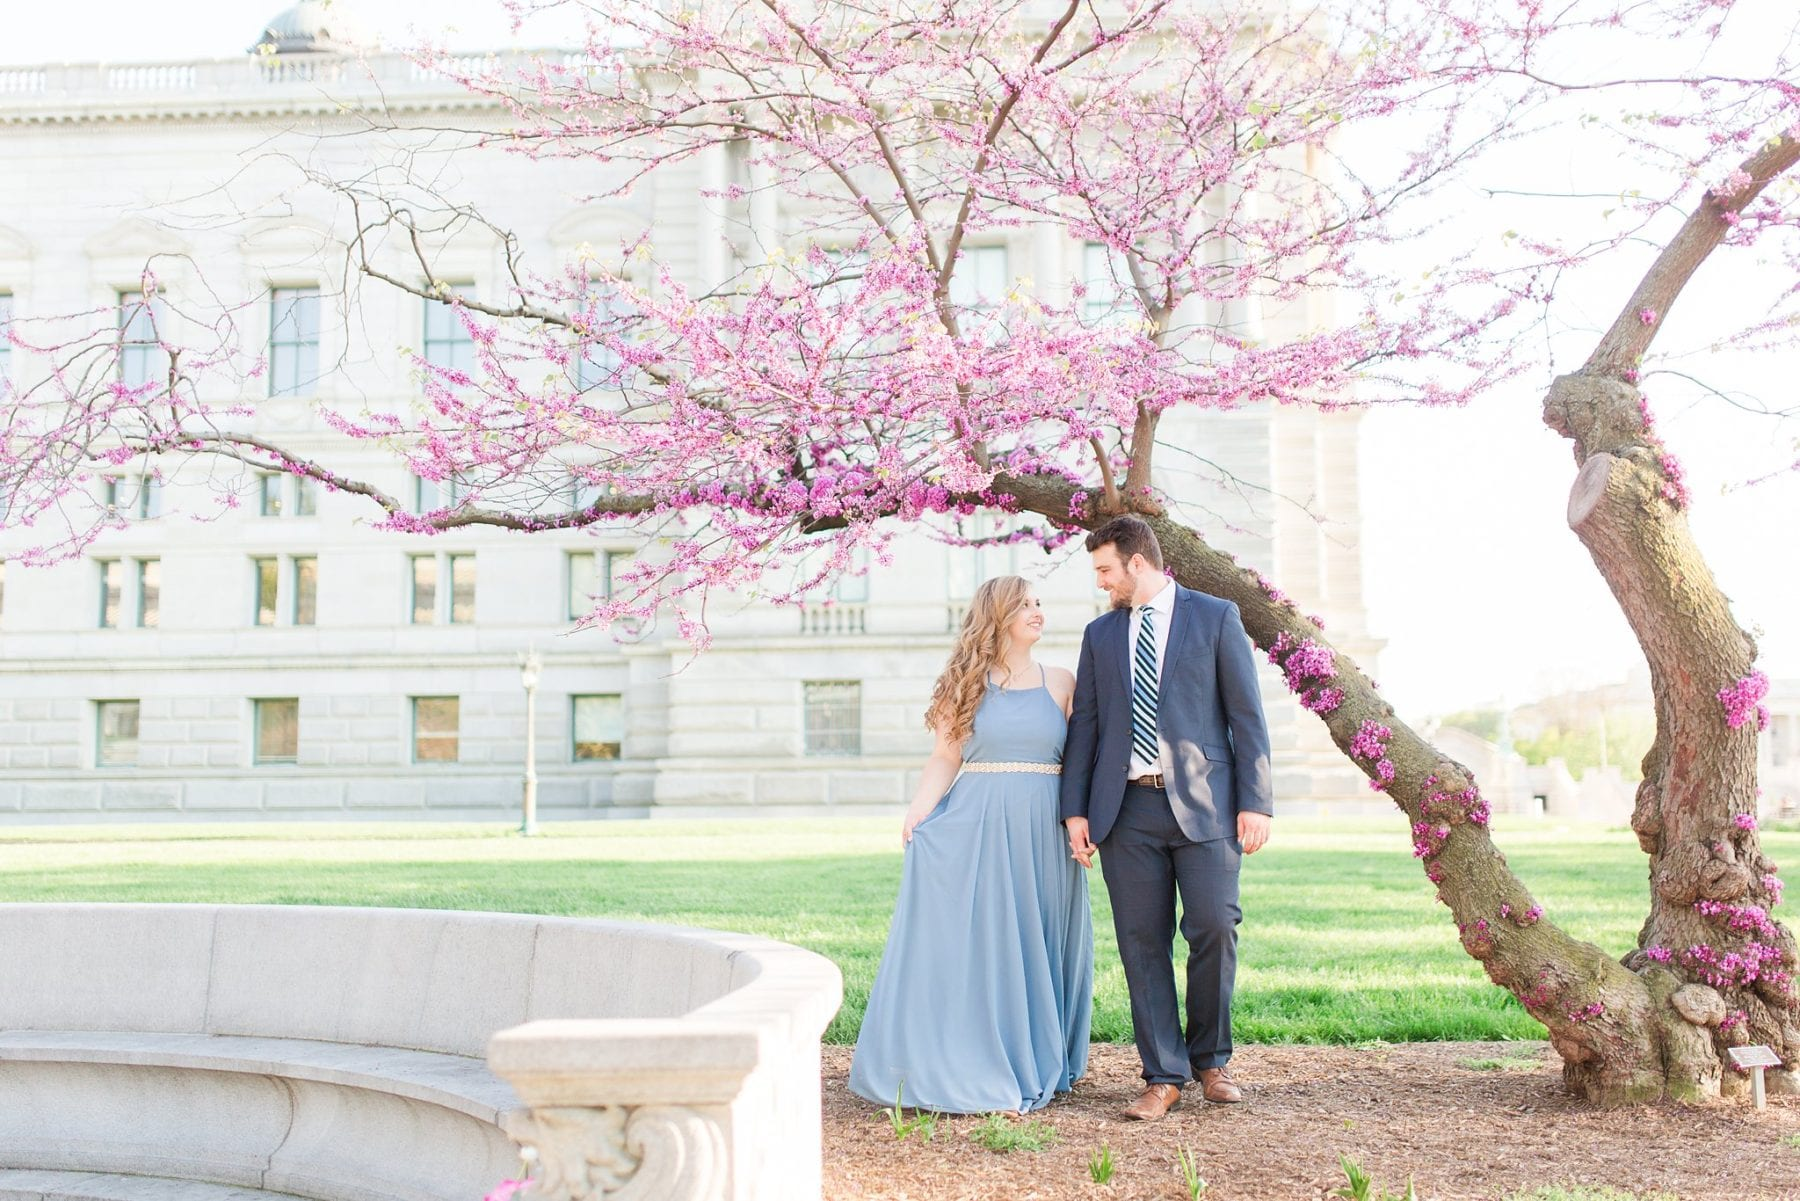 Capitol Hill Engagement Photos Kelly & Zach Washington DC Wedding Photographer Megan Kelsey Photography-109.jpg